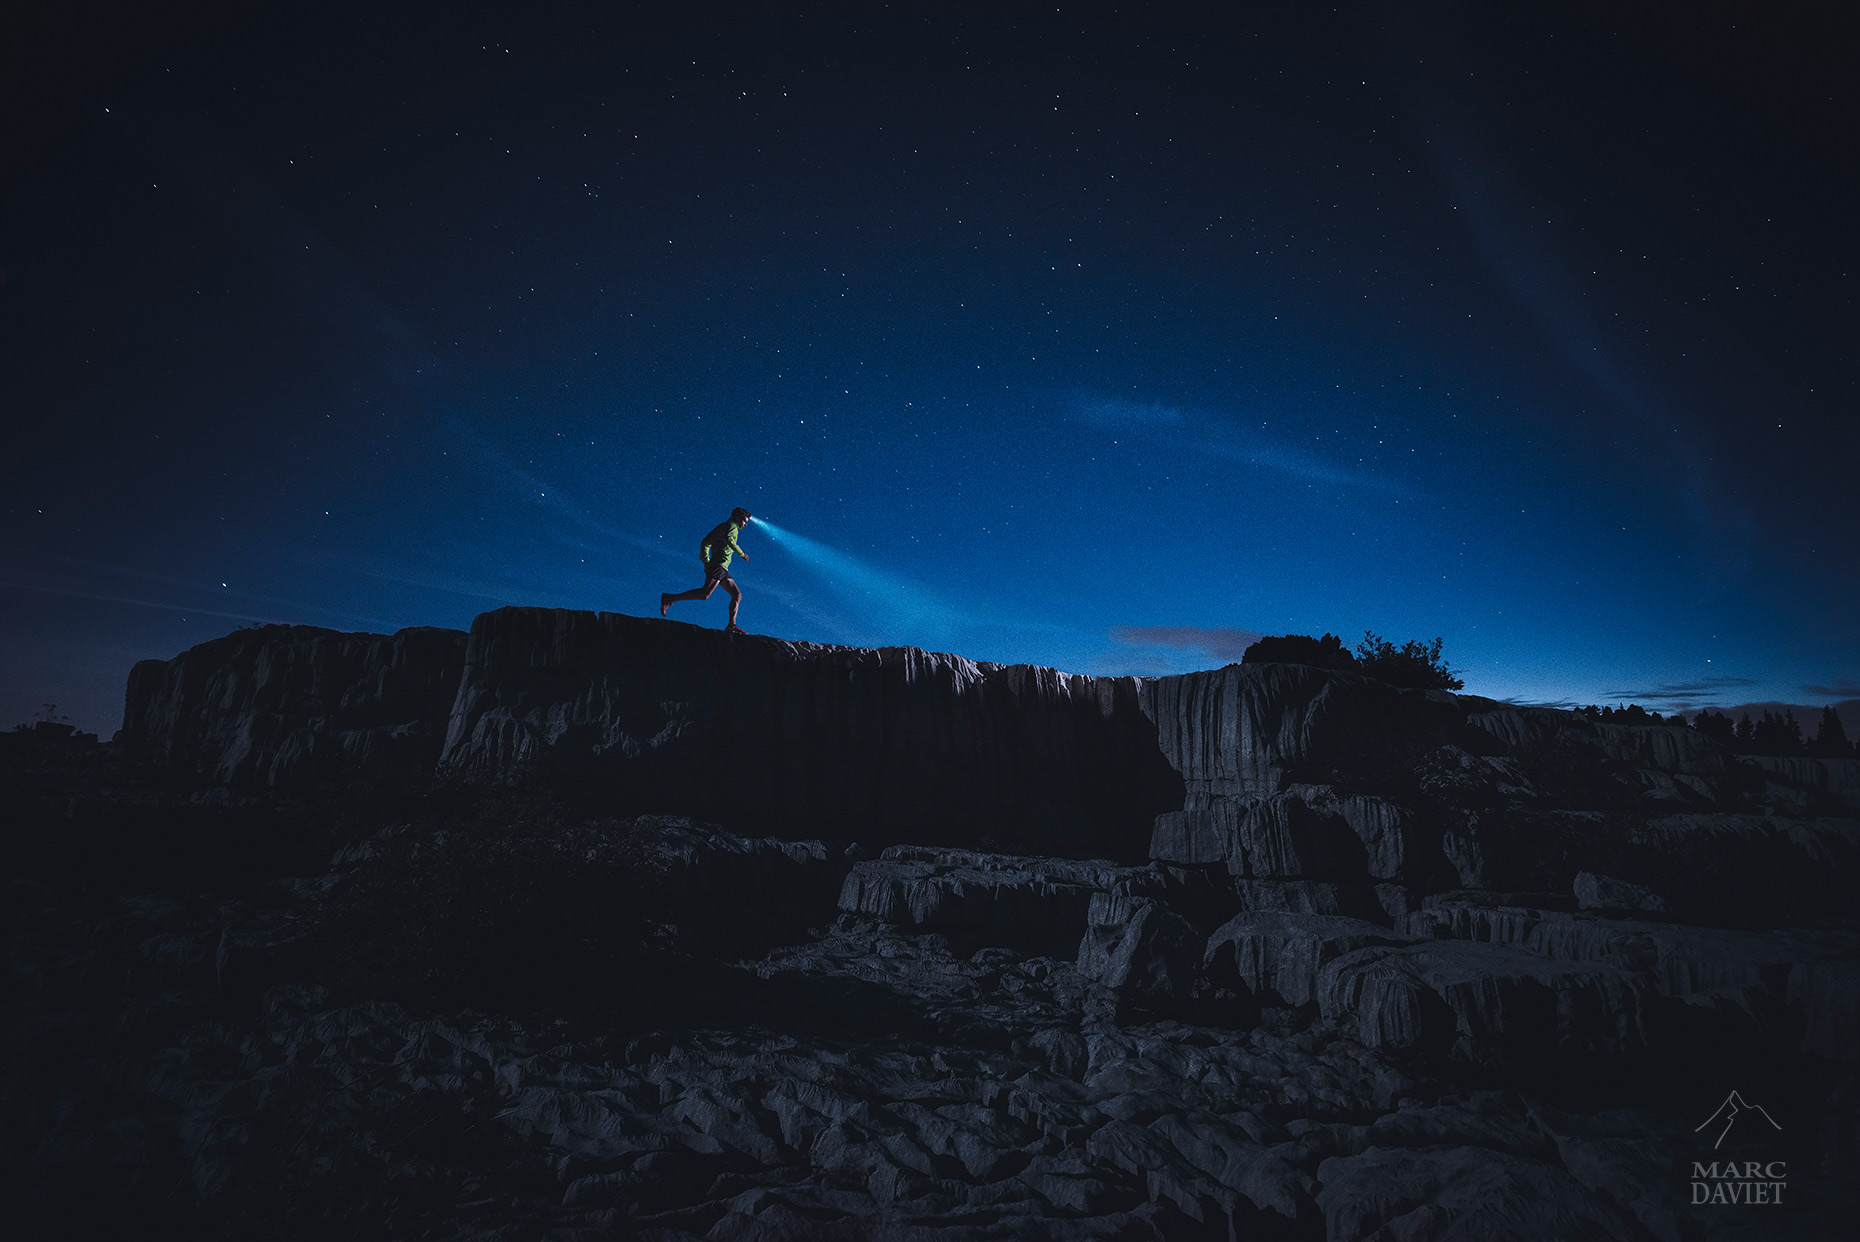 Kilian Jornet in the night - Marc Daviet Photography